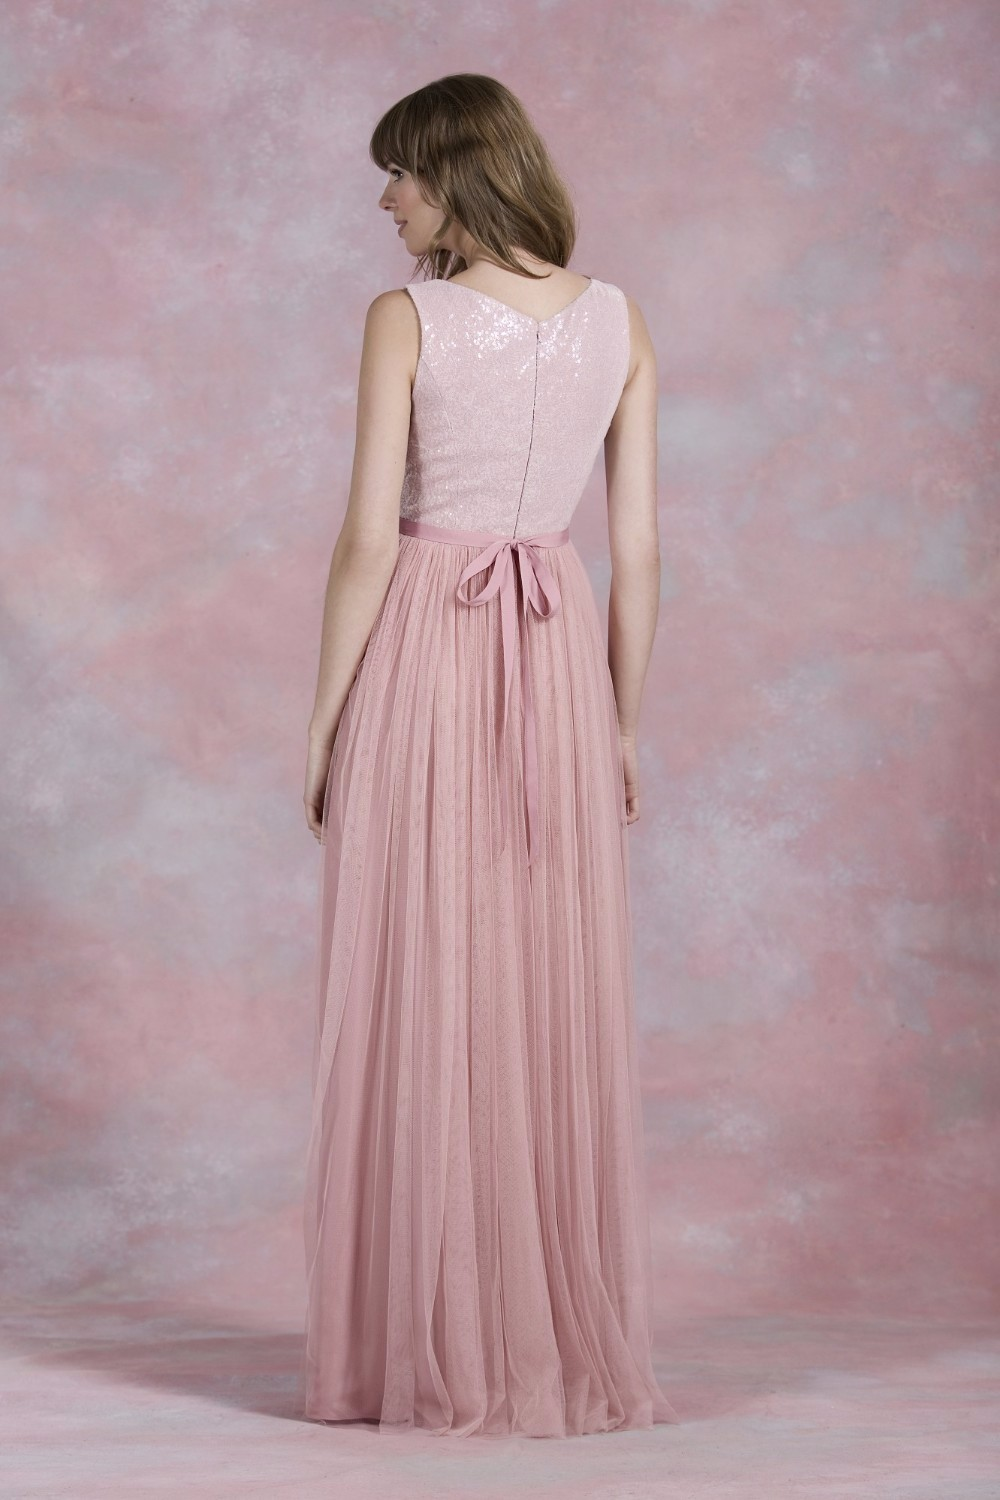 Nude Pink Sequined A Line Zipper Back Long Tulle Bridesmaid Dress 2